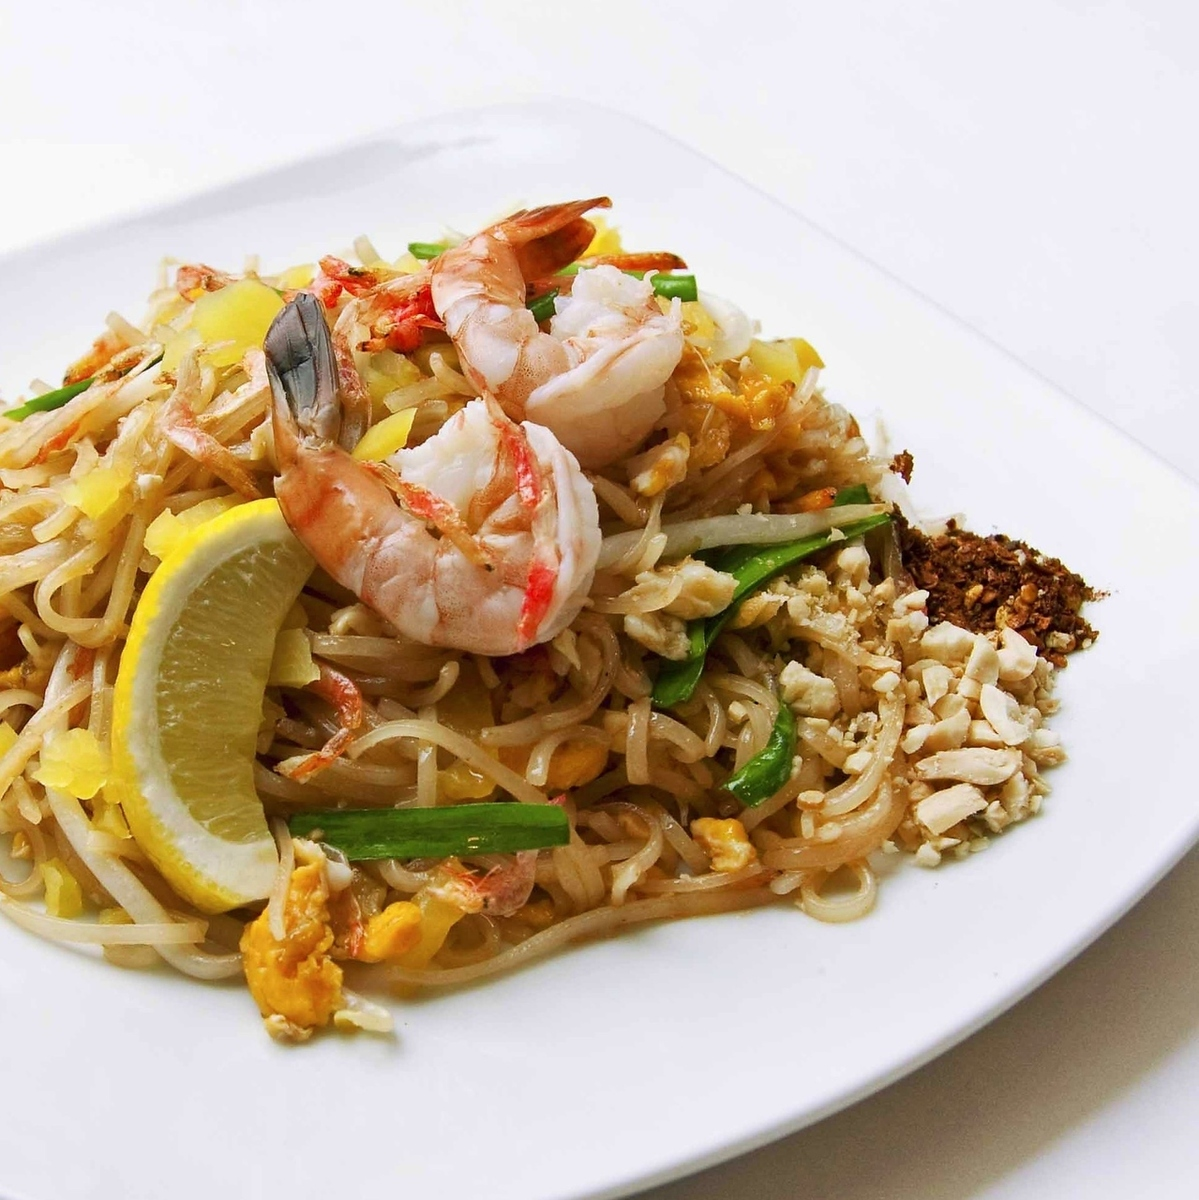 Thai grilled rice vermicelli